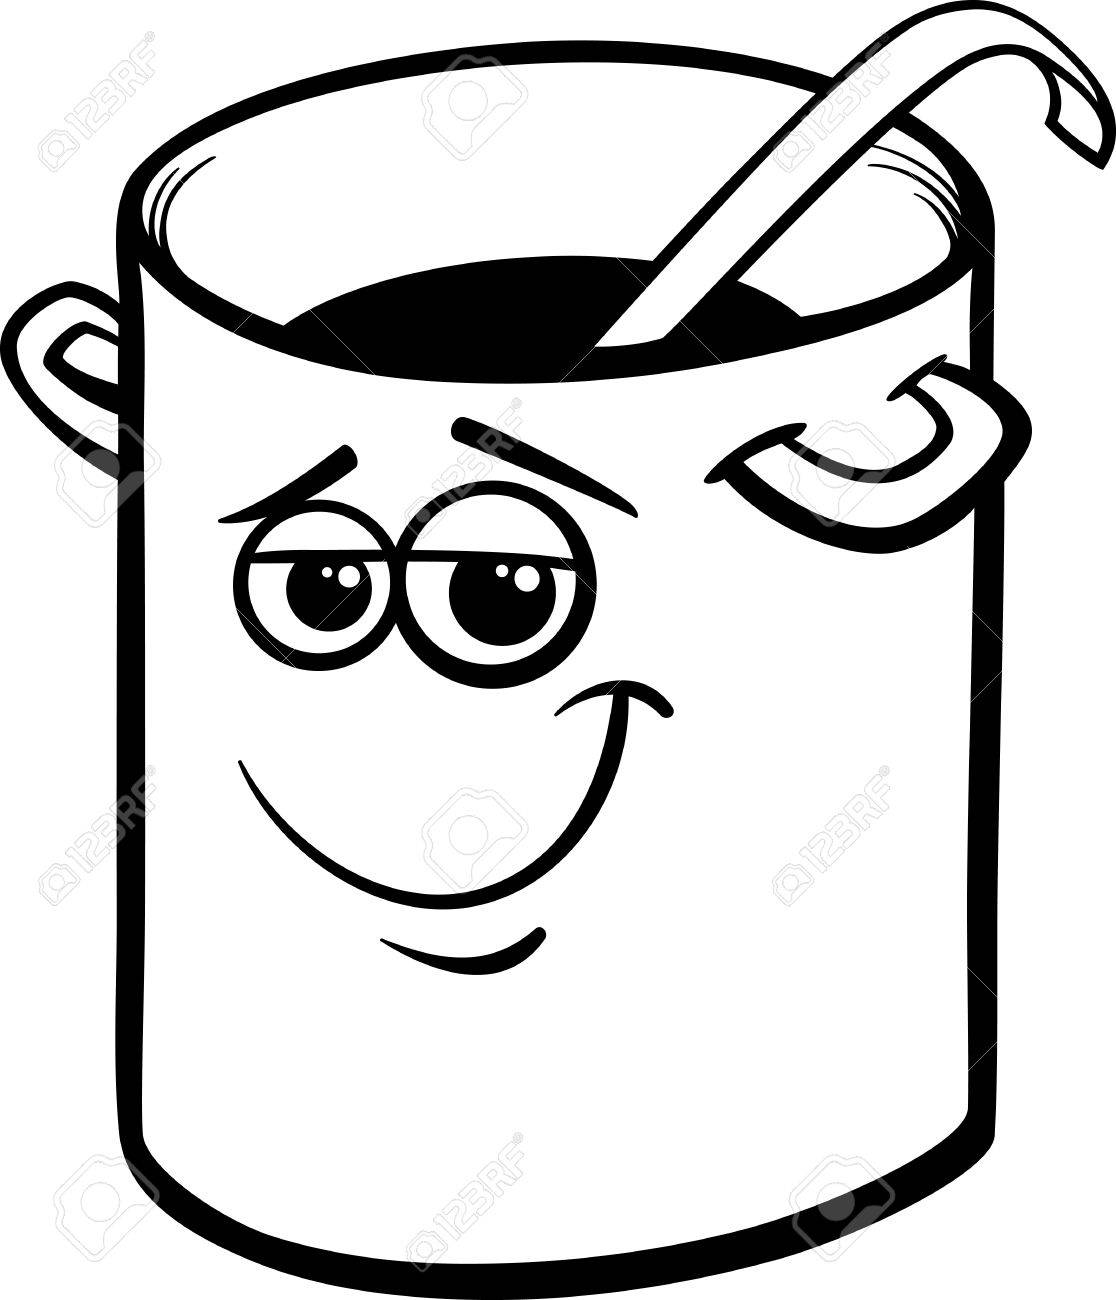 pan clipart black and white. funny black and white cartoon pot or pan with ladle stock vector - 25894312 clipart